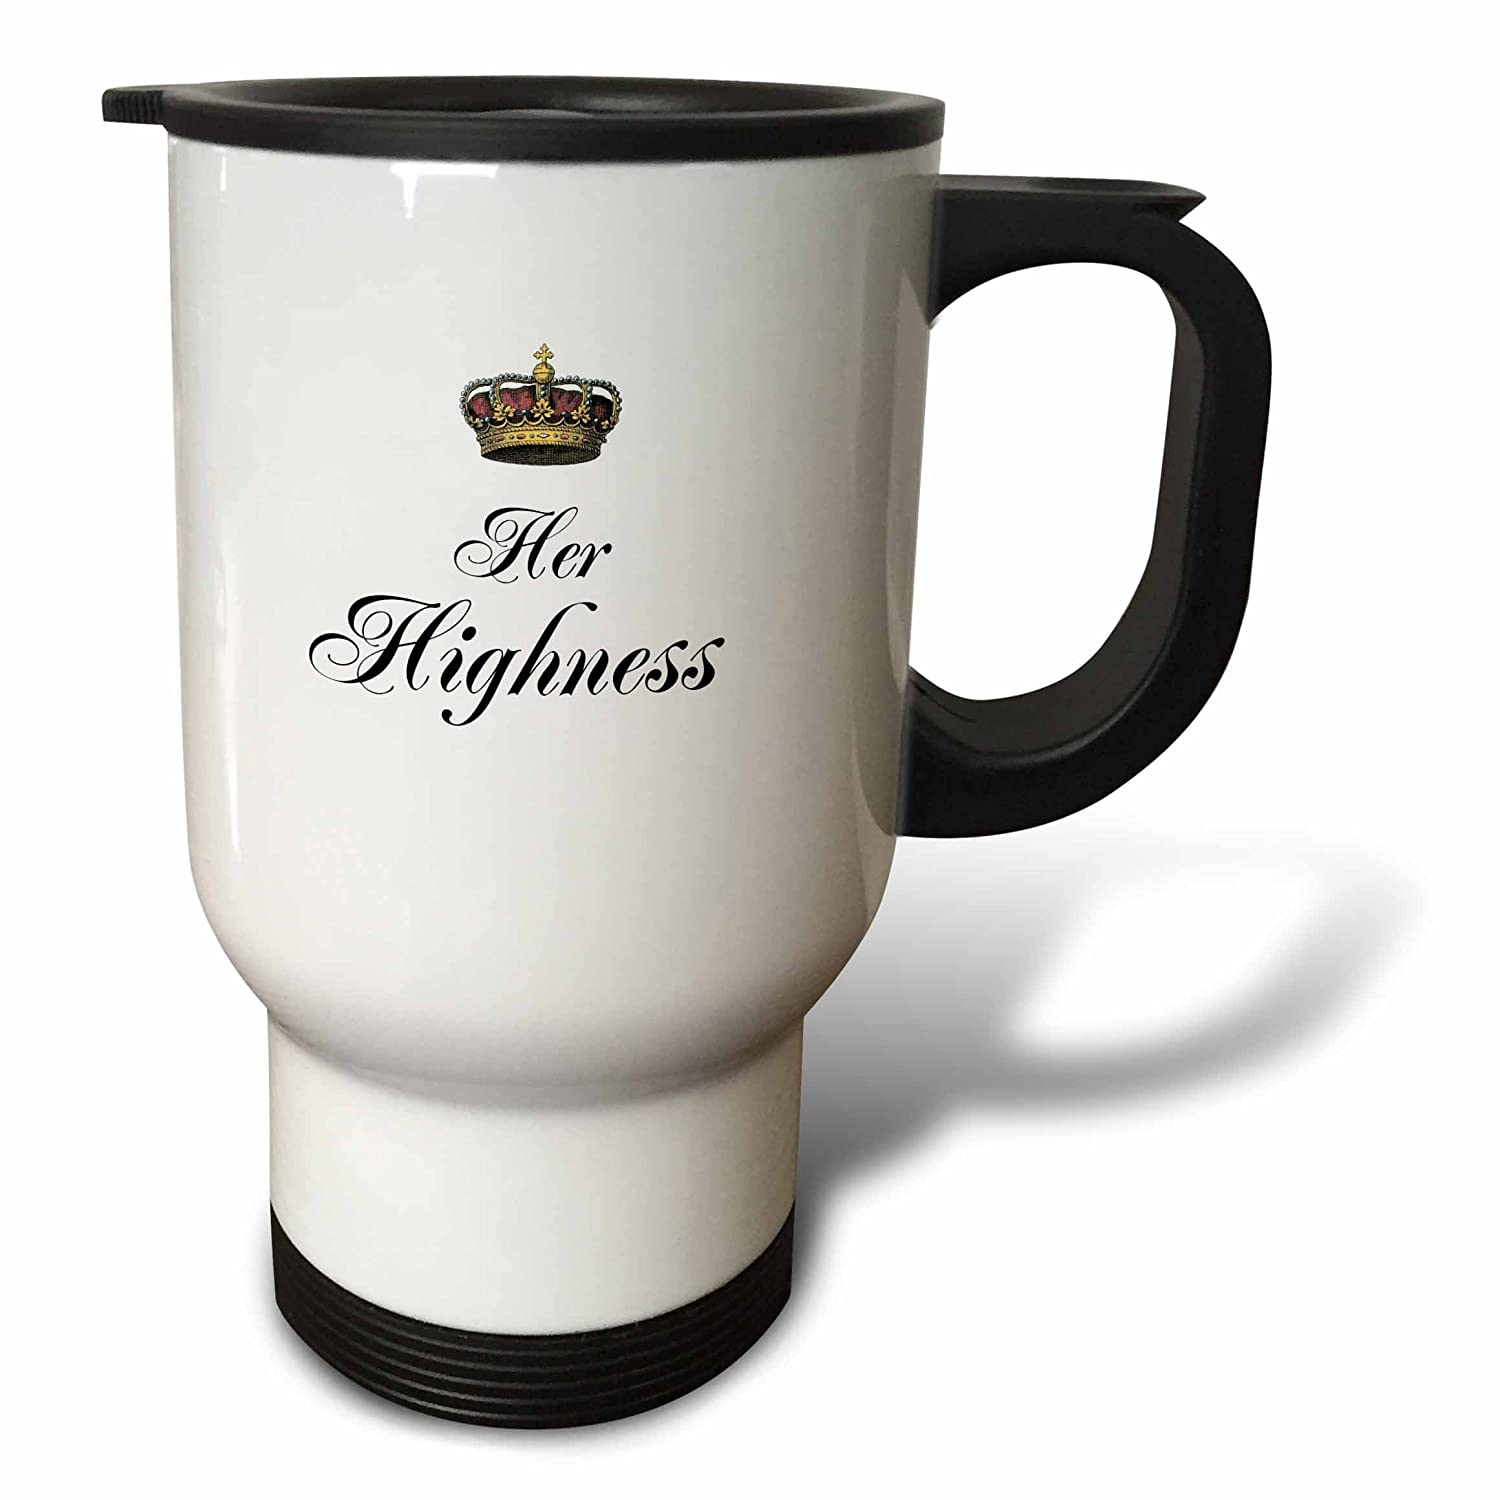 14 oz 3dpink tm_112866_1  Her Highness Part of a His and Hers Couple Gift Set Funny Humgoldus Royalty Humor Mr. and Mrs. Travel Mug, 14 oz, Multicolor